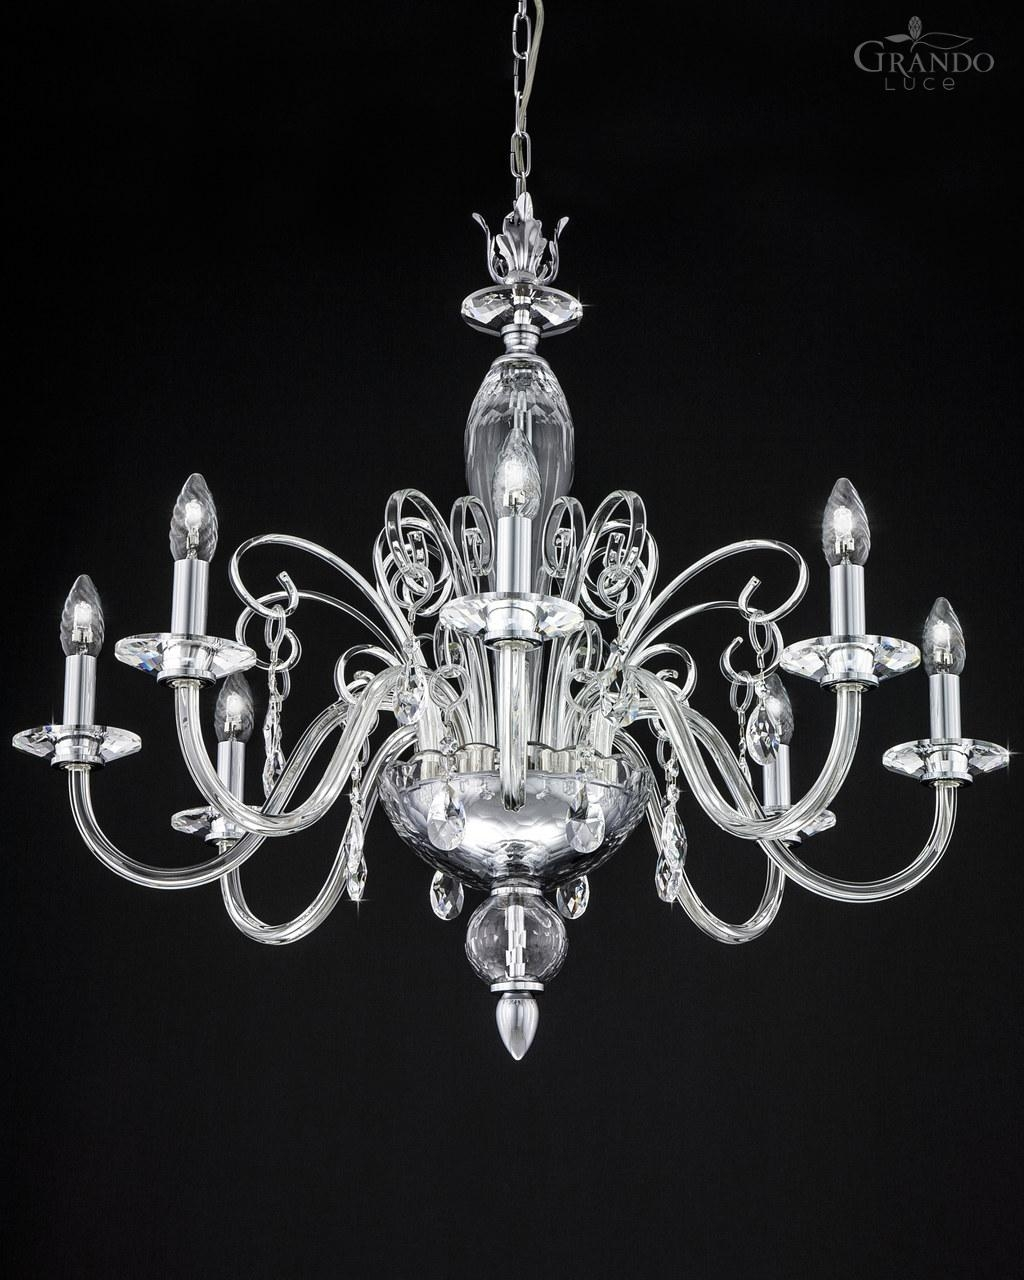 1208 Ch Chrome Crystal Chandelier With Swarovski Elements Intended For Chrome Chandelier (Image 1 of 15)